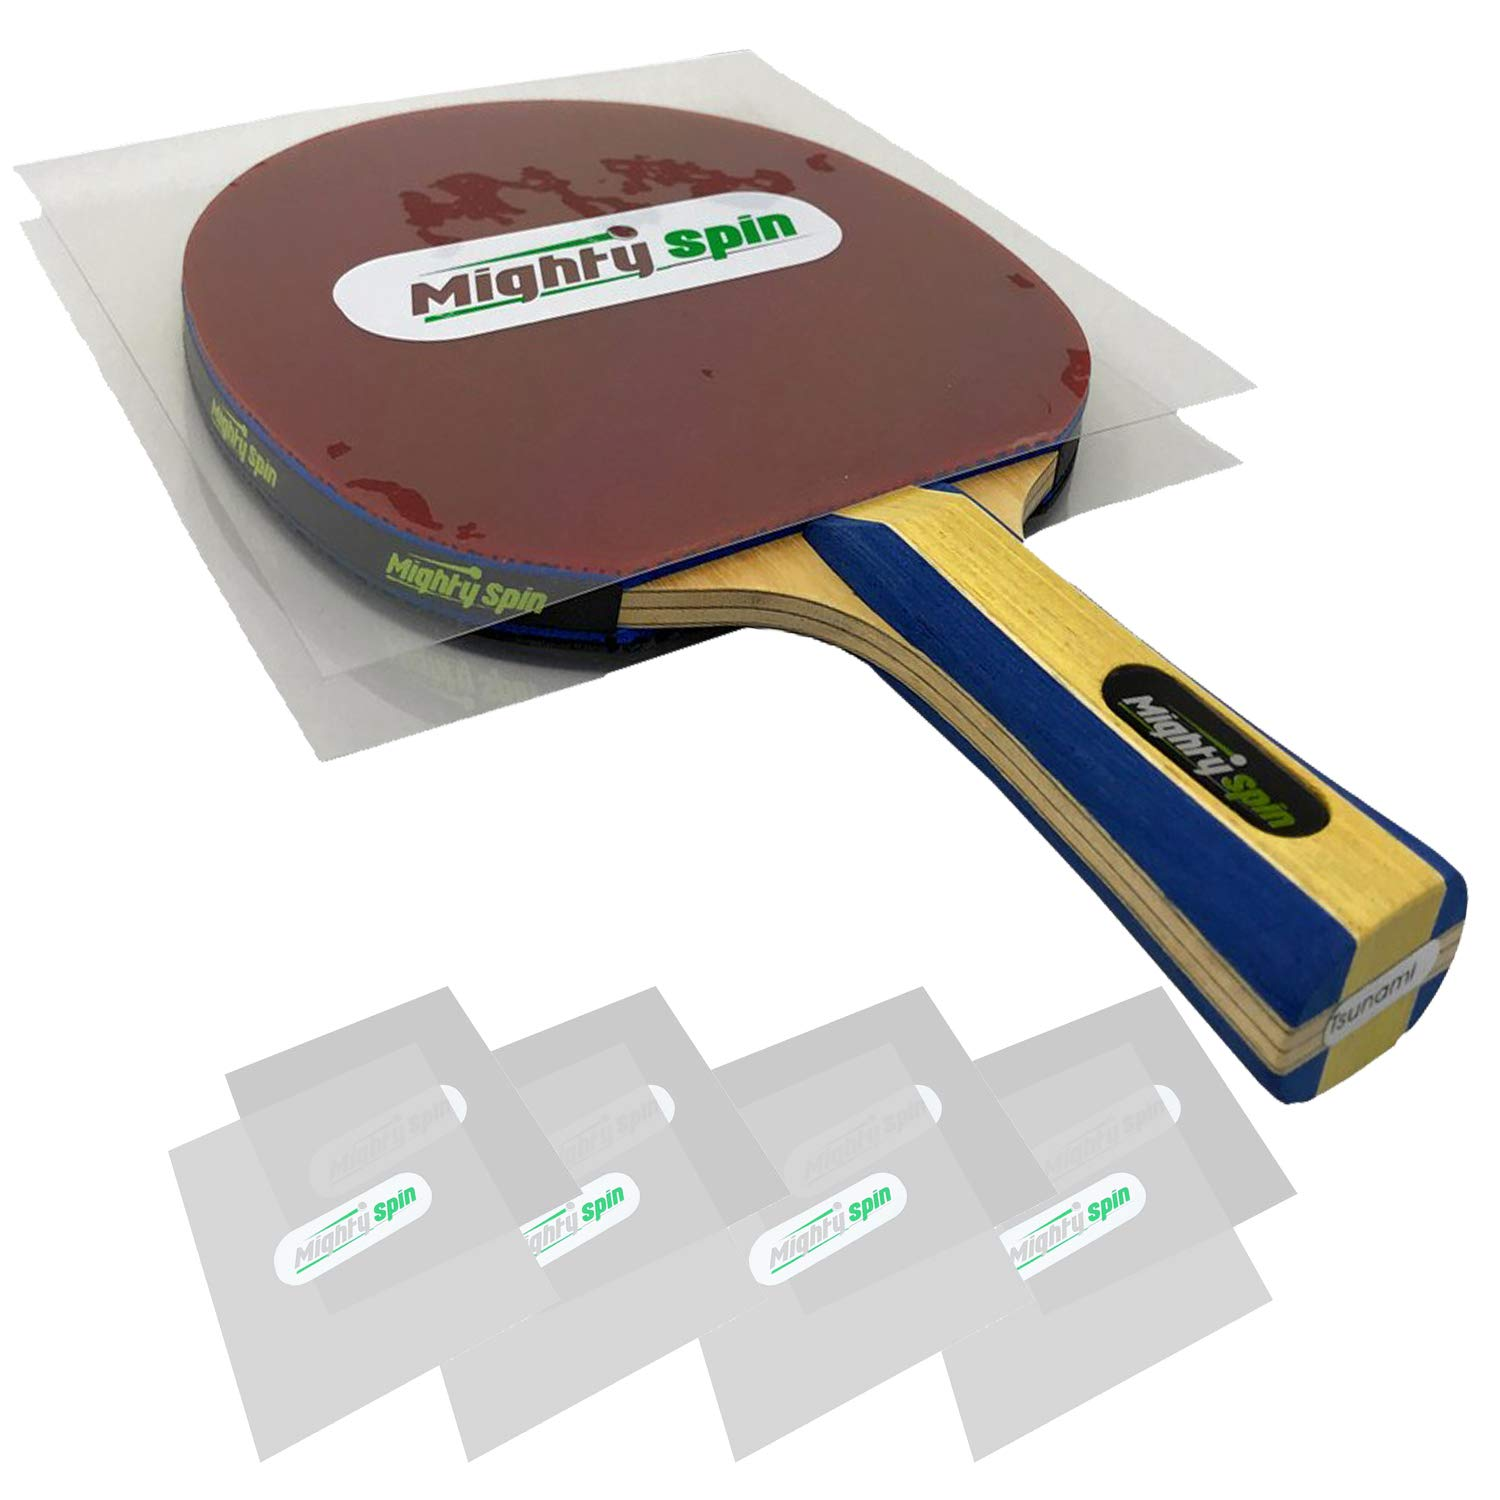 MightySpin Ping Pong Paddle Protector - Table Tennis Accessories Racket Rubber Protection Sheet - Protective Film